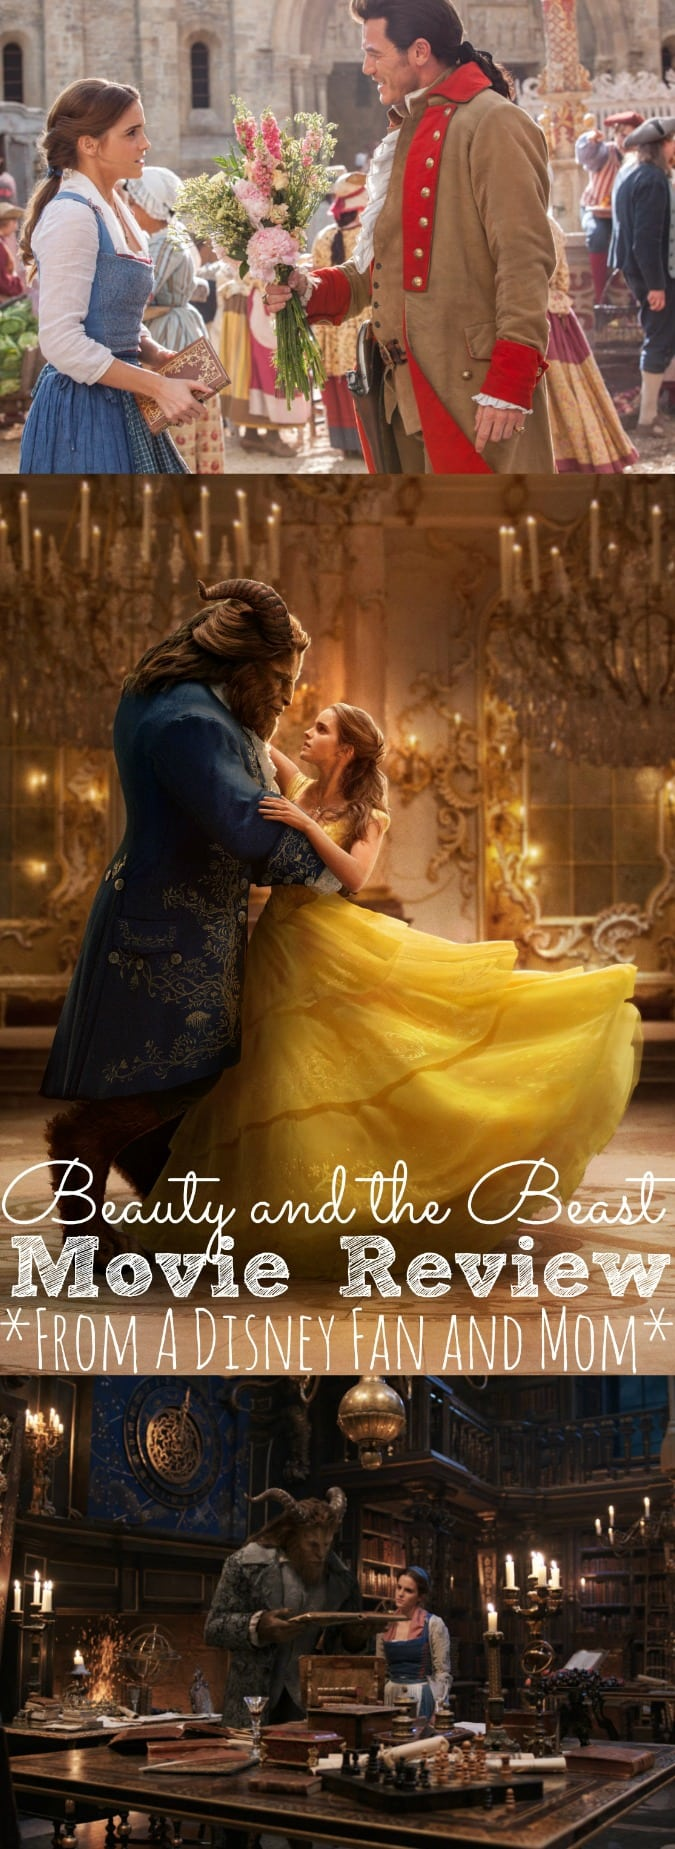 Beauty and the Beast Movie Review - A Parent's Guide - simplytodaylife.com